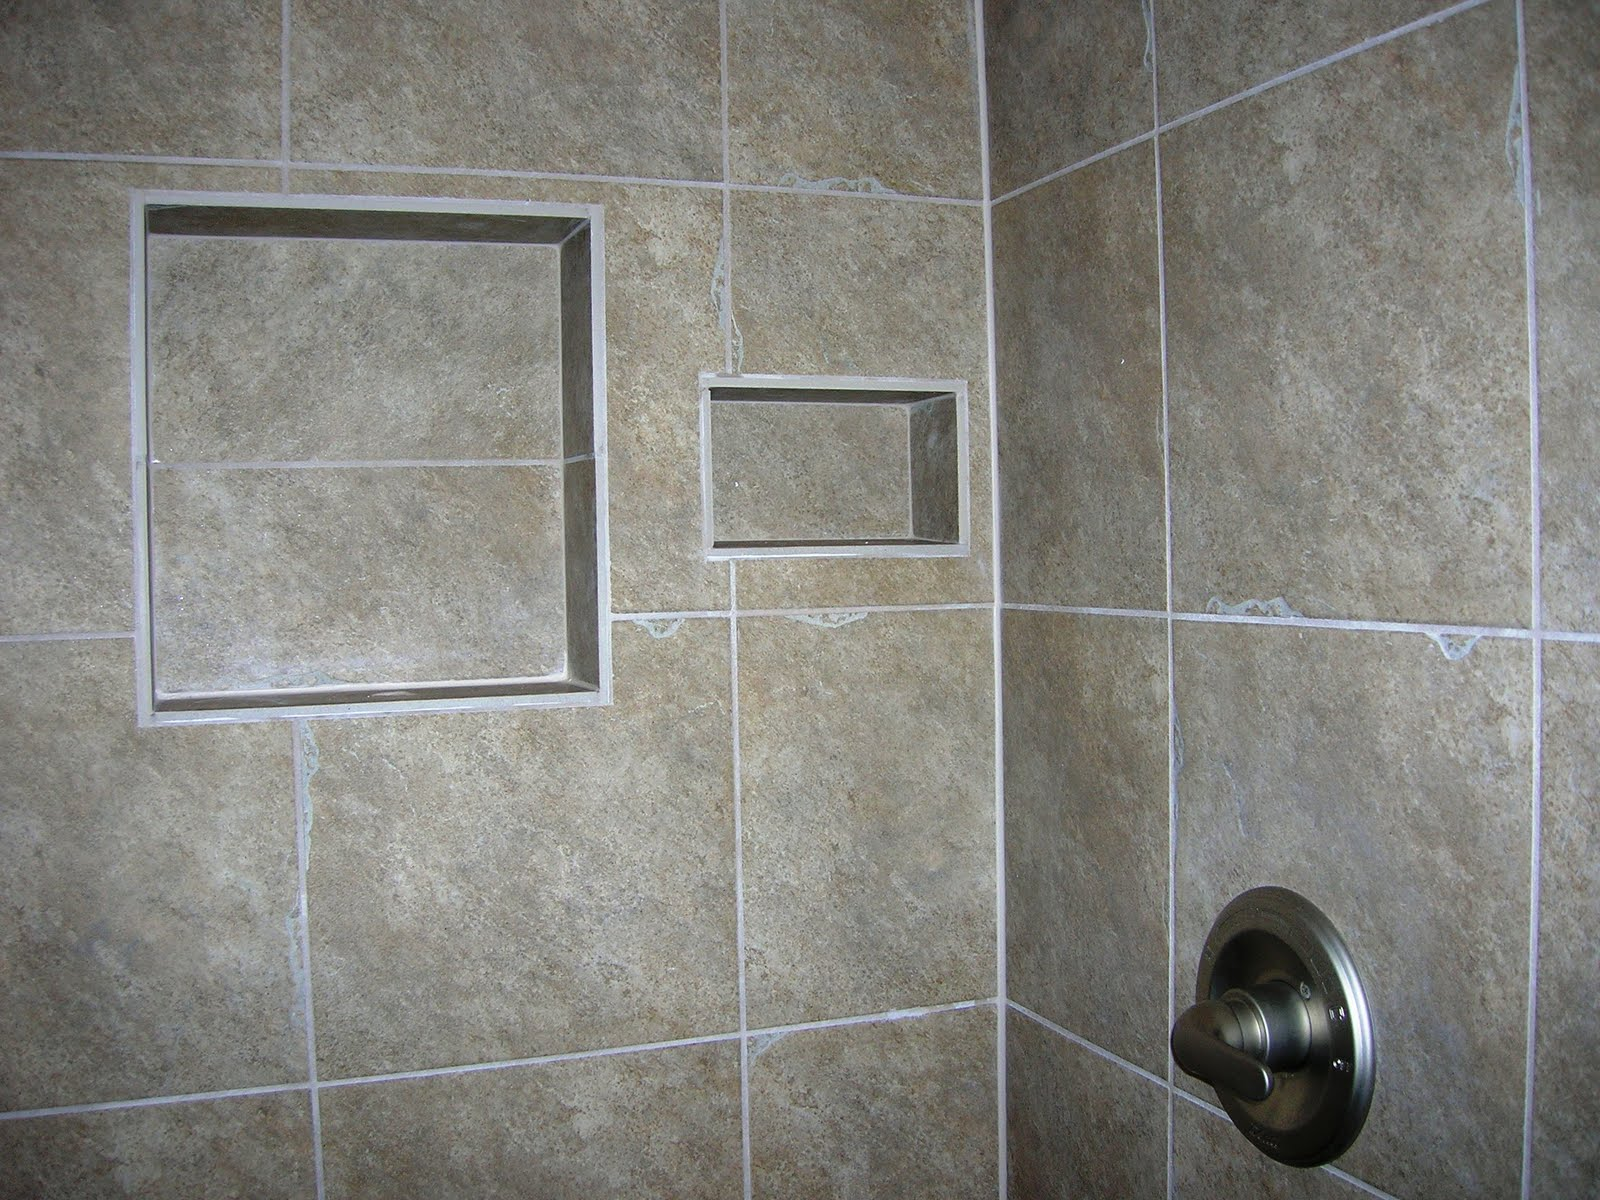 bathroom tiles designs gallery bathroom tile - Bathroom Tiles Designs Gallery